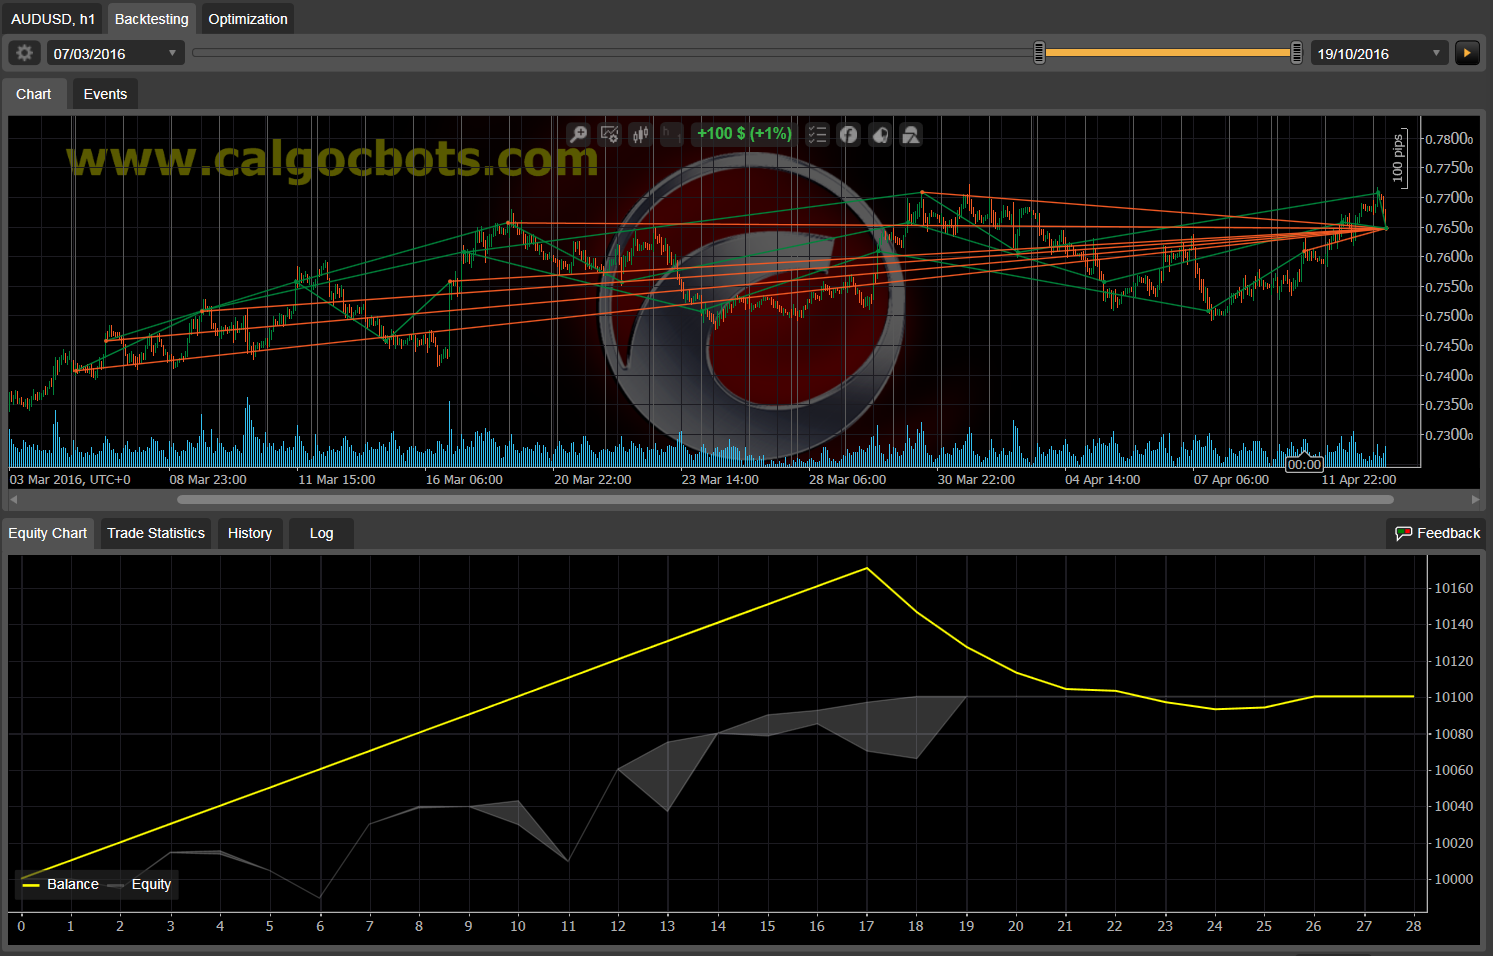 Dual Grid Hedge AUD USD 1h cAlgo cBots cTrader 1k 100 50 100 - 08